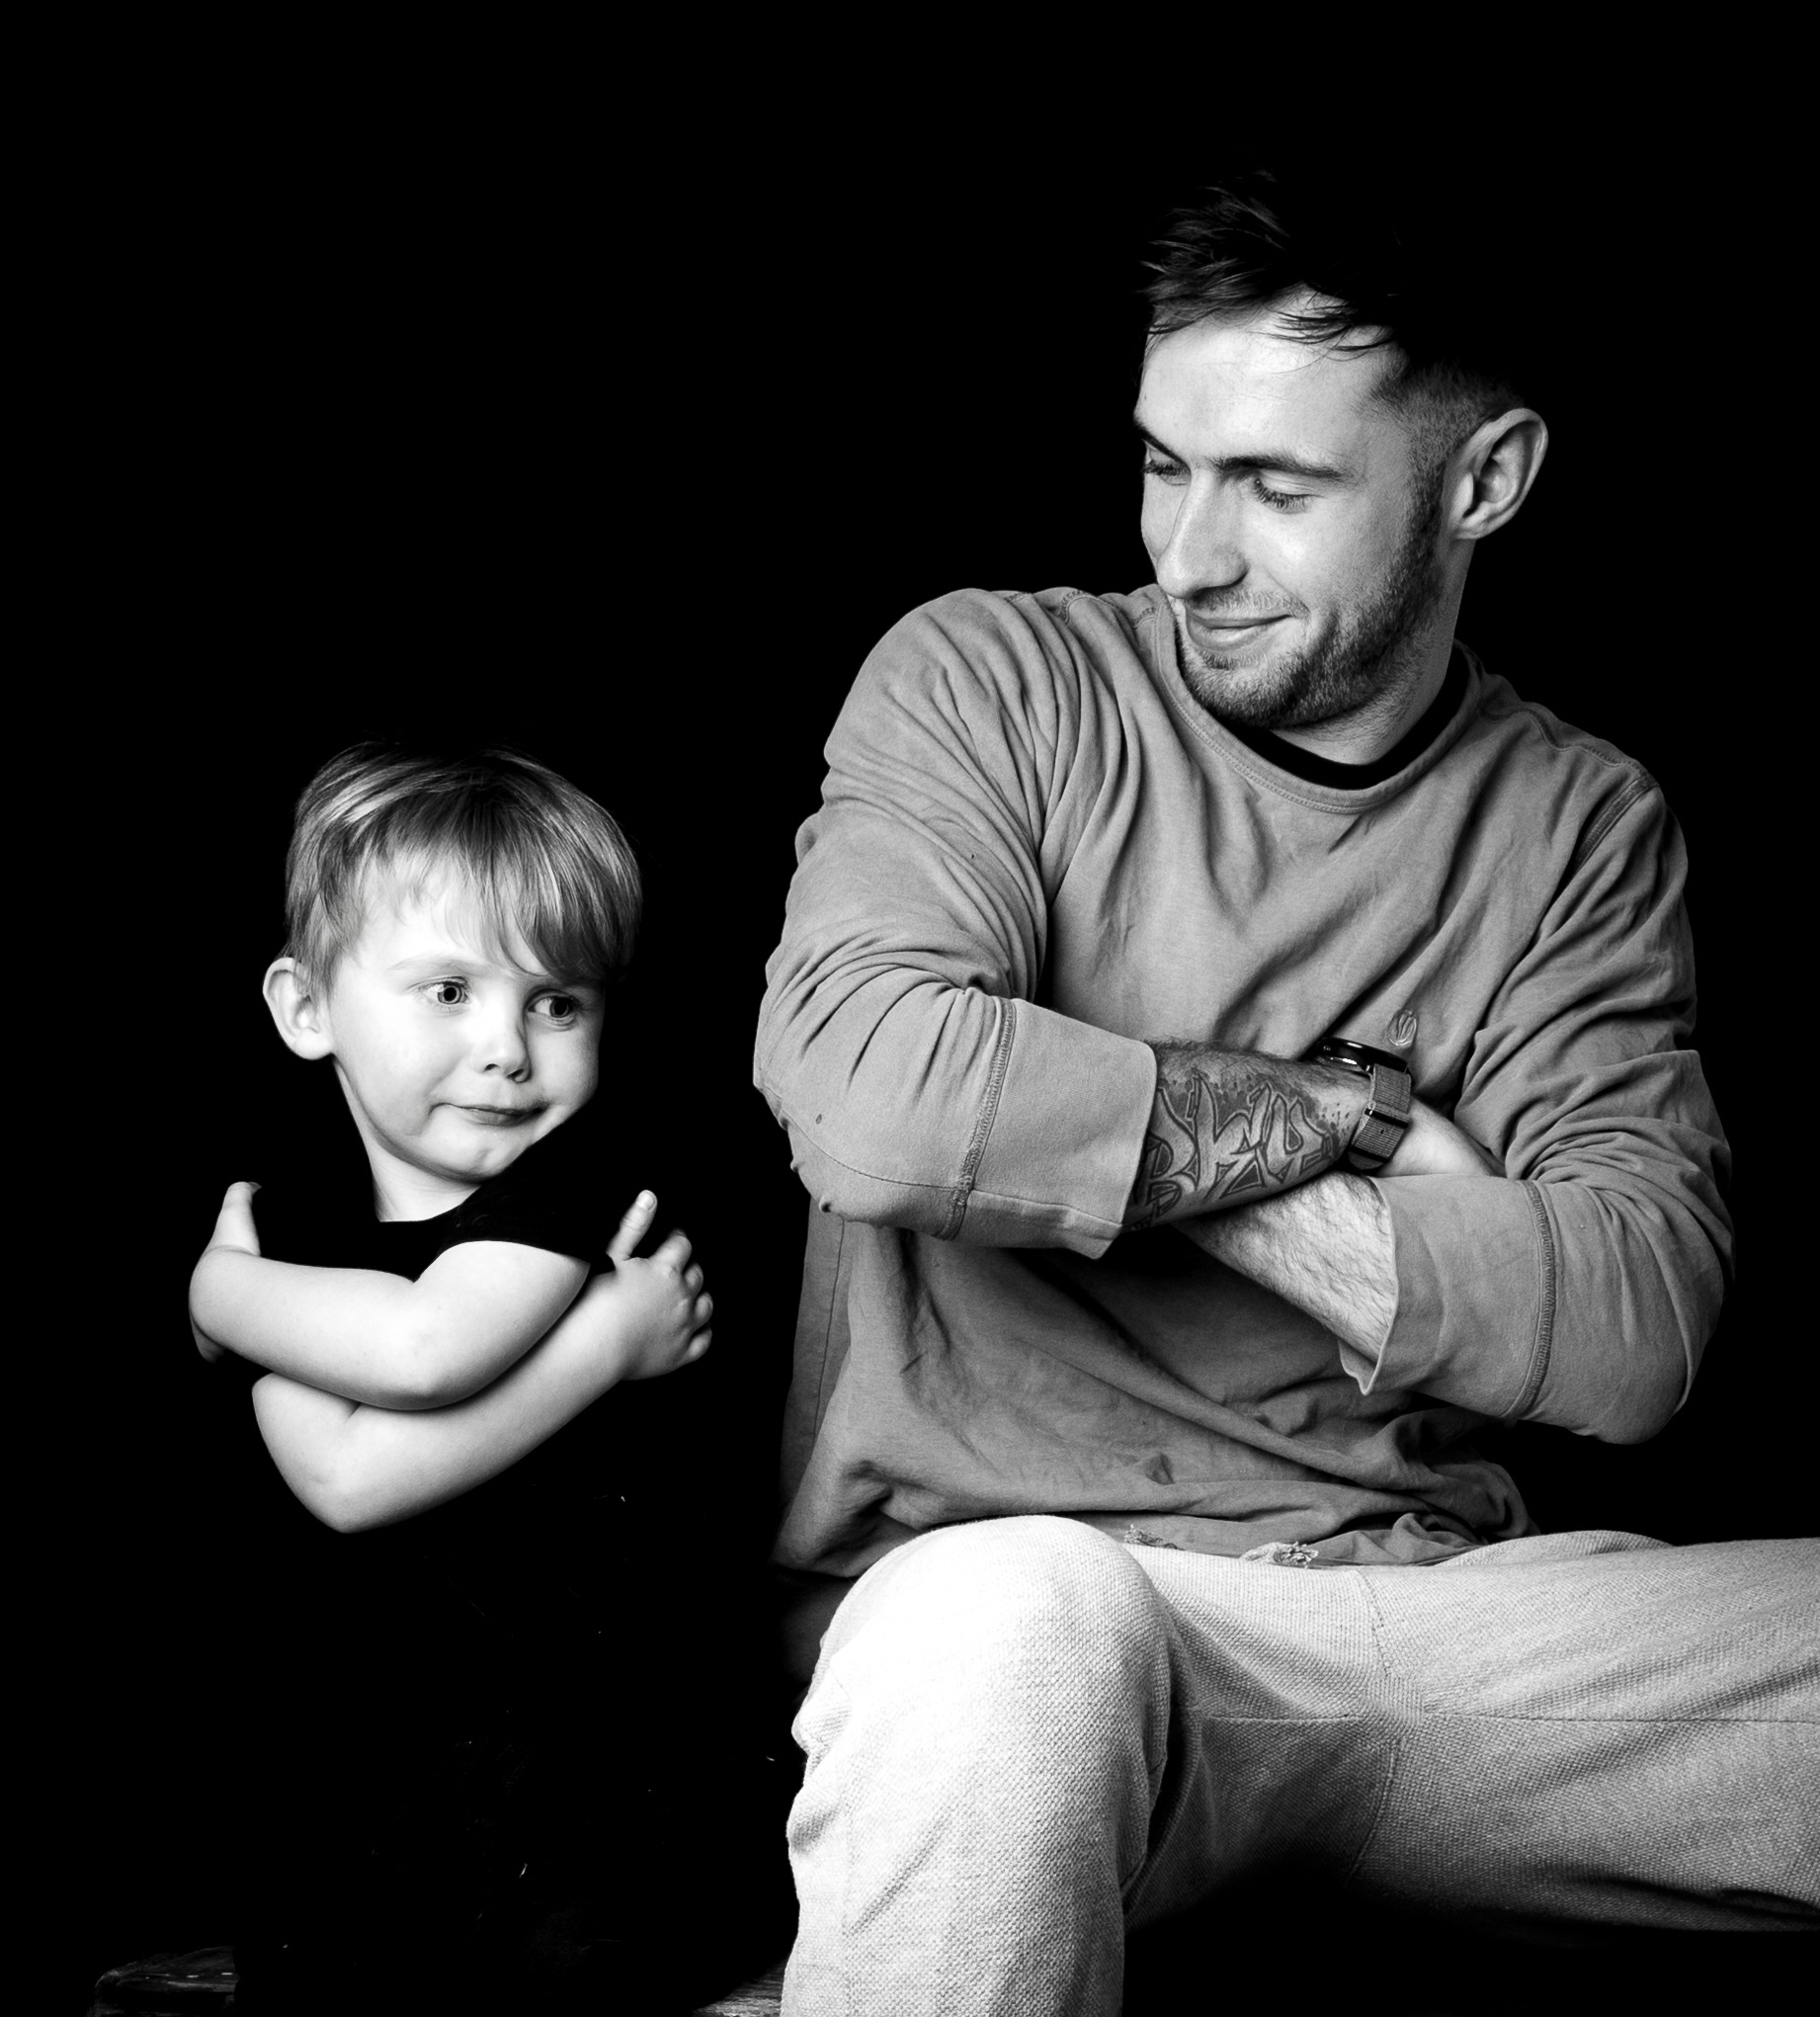 Grandson in the studio #bw by Gina Rayment